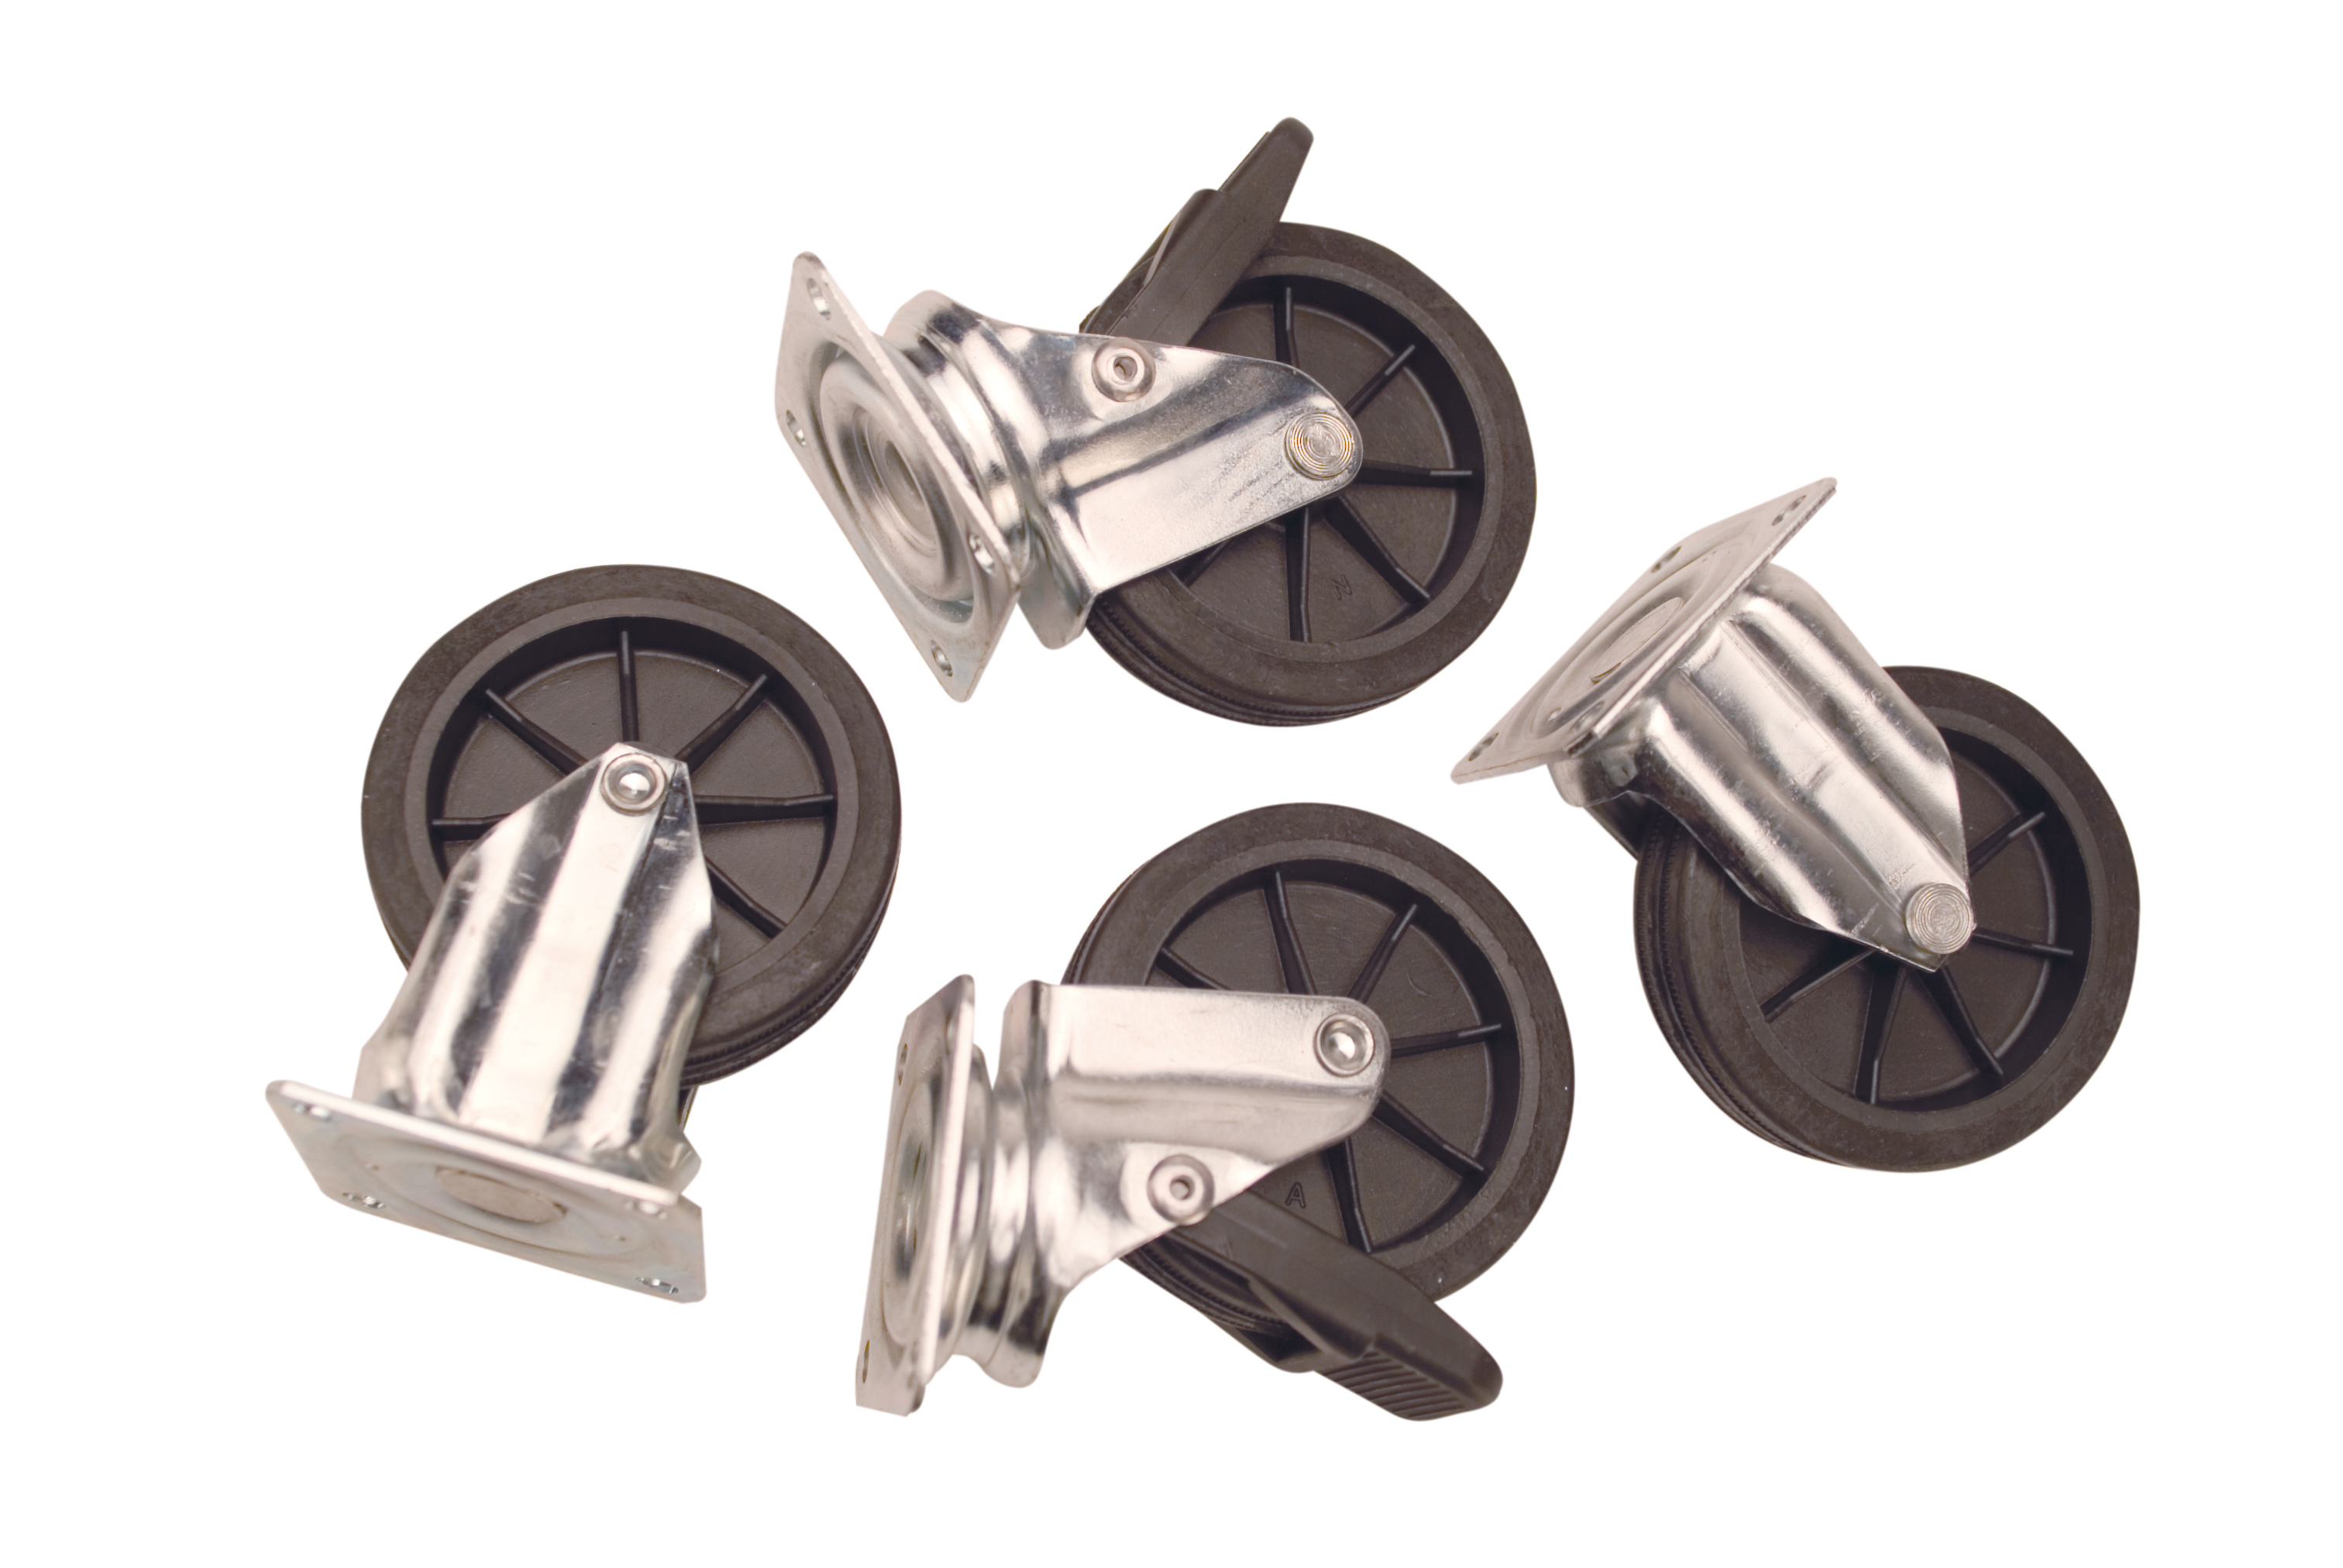 Set of 4 wheels for Cayman, size 4-7